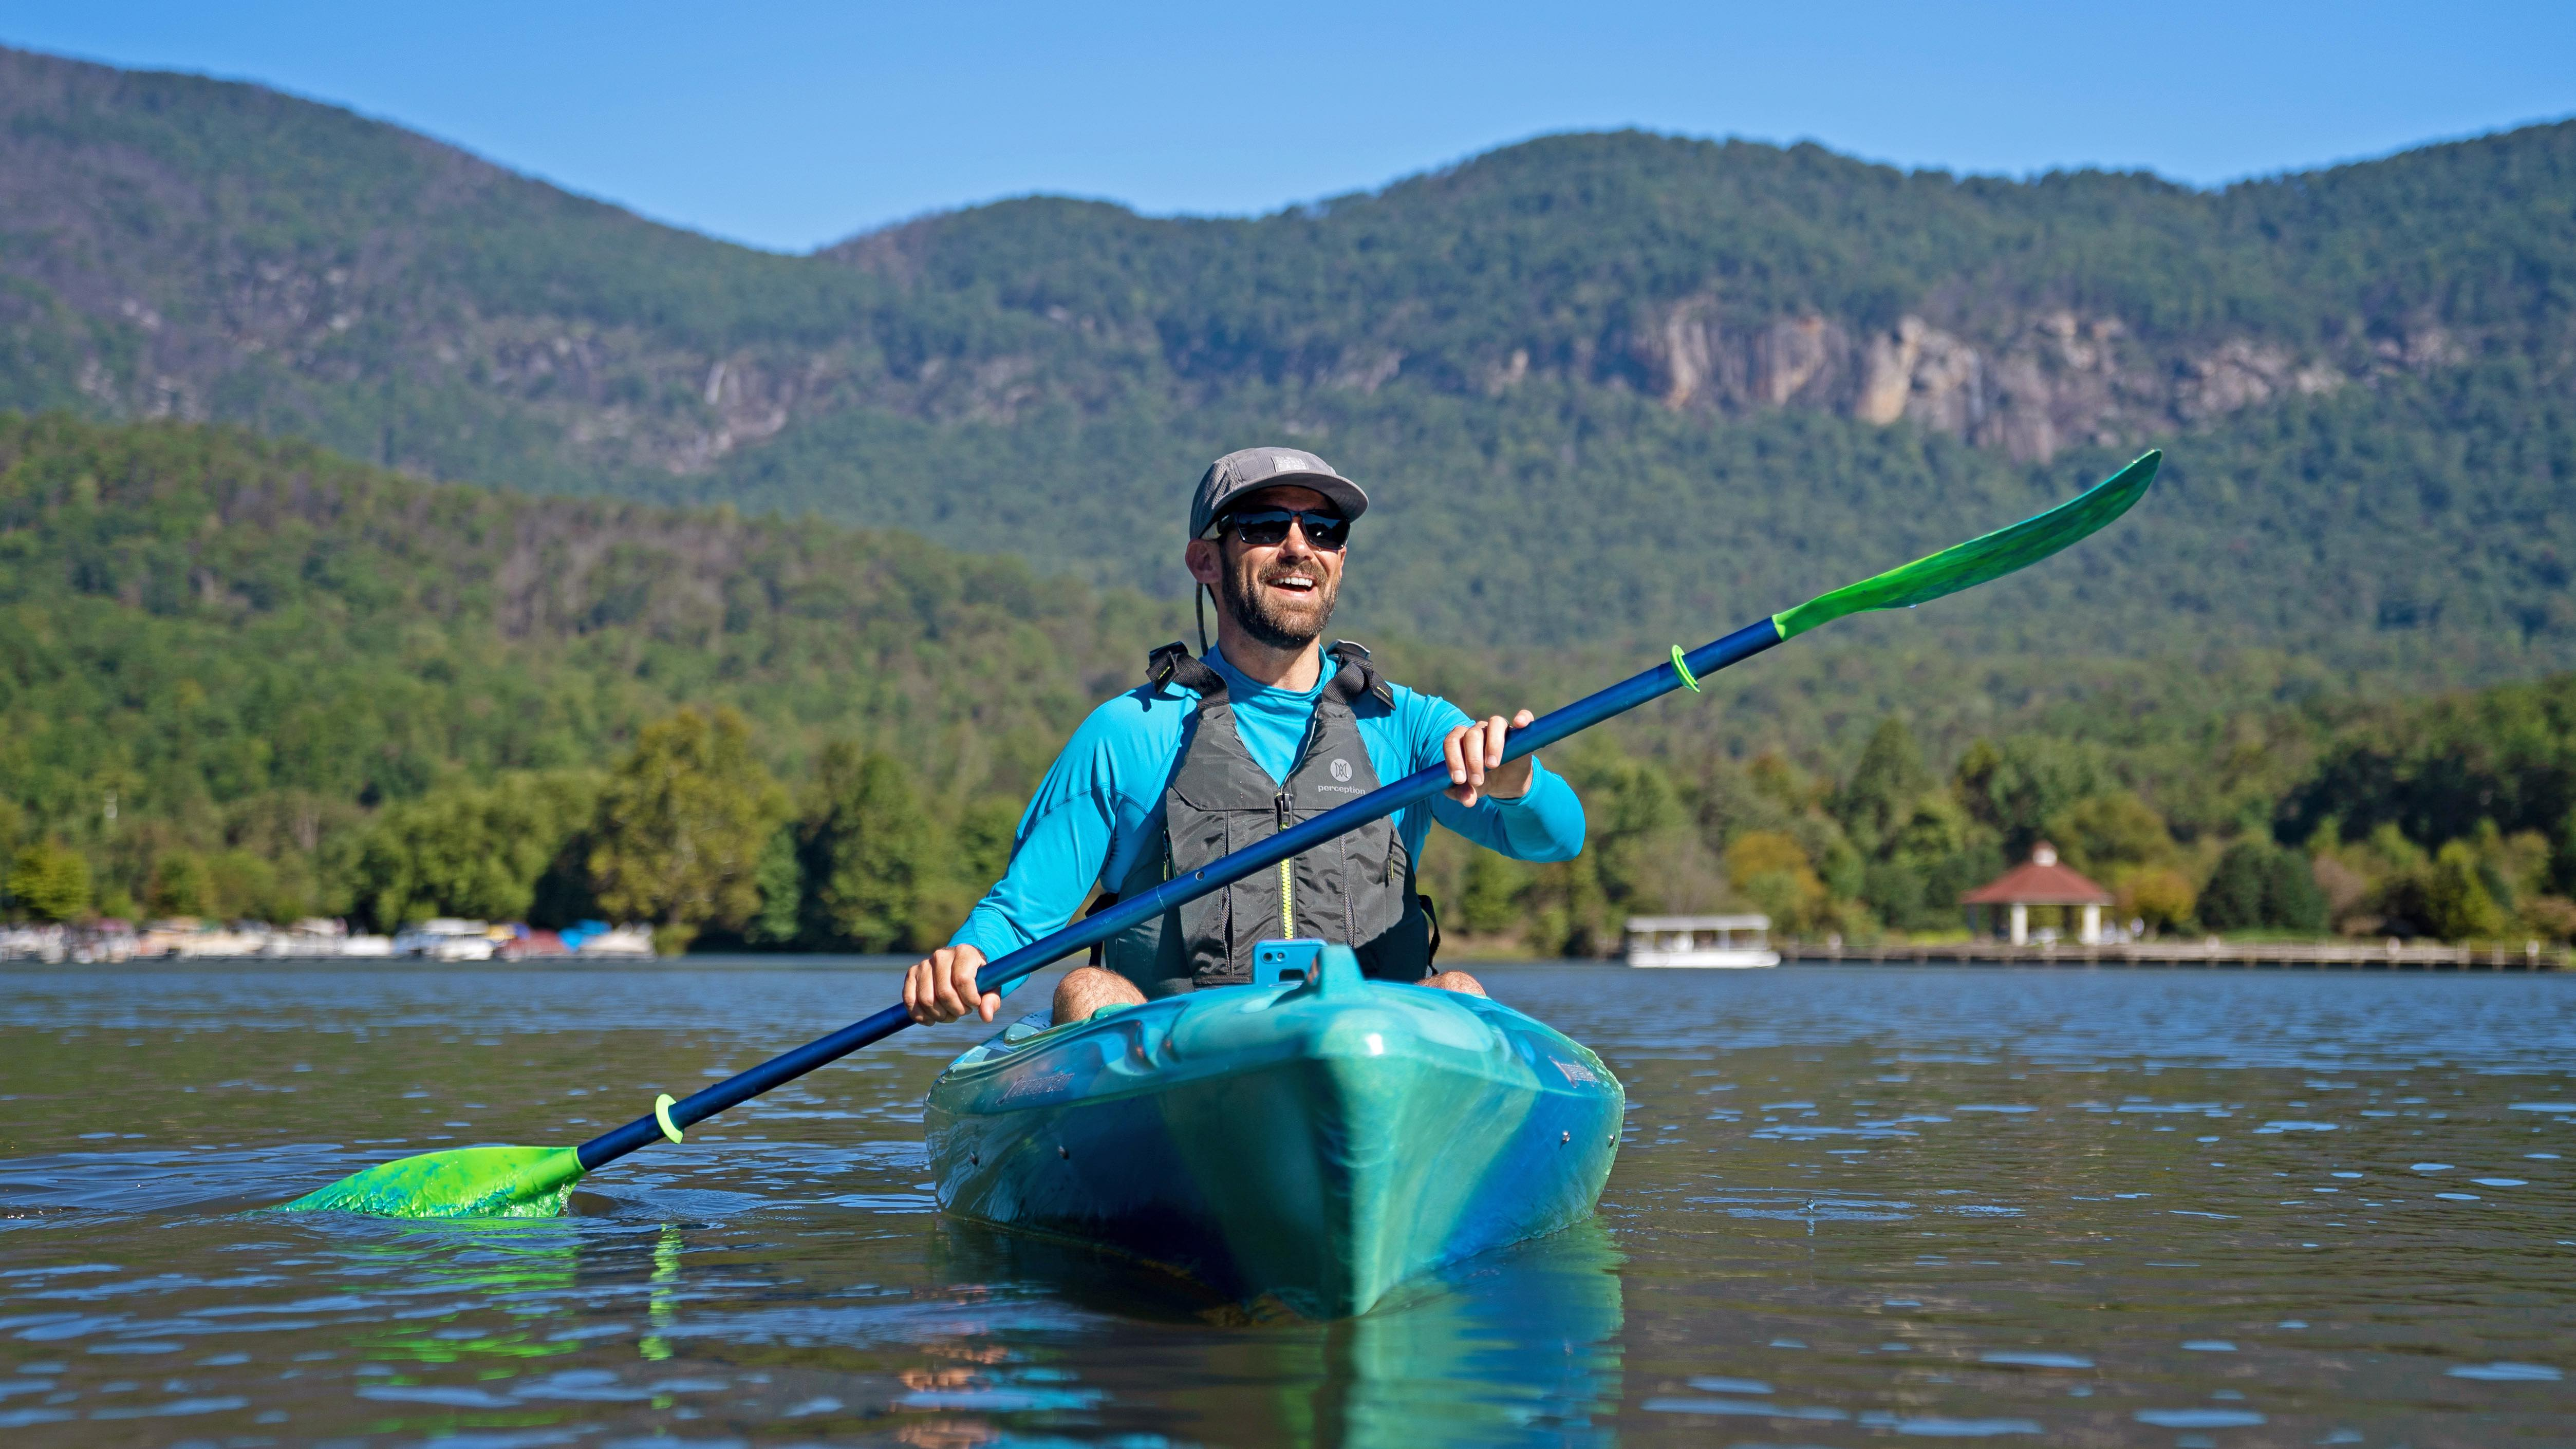 Kayak Safety: A Primer from Perception Kayaks - Paddling Life